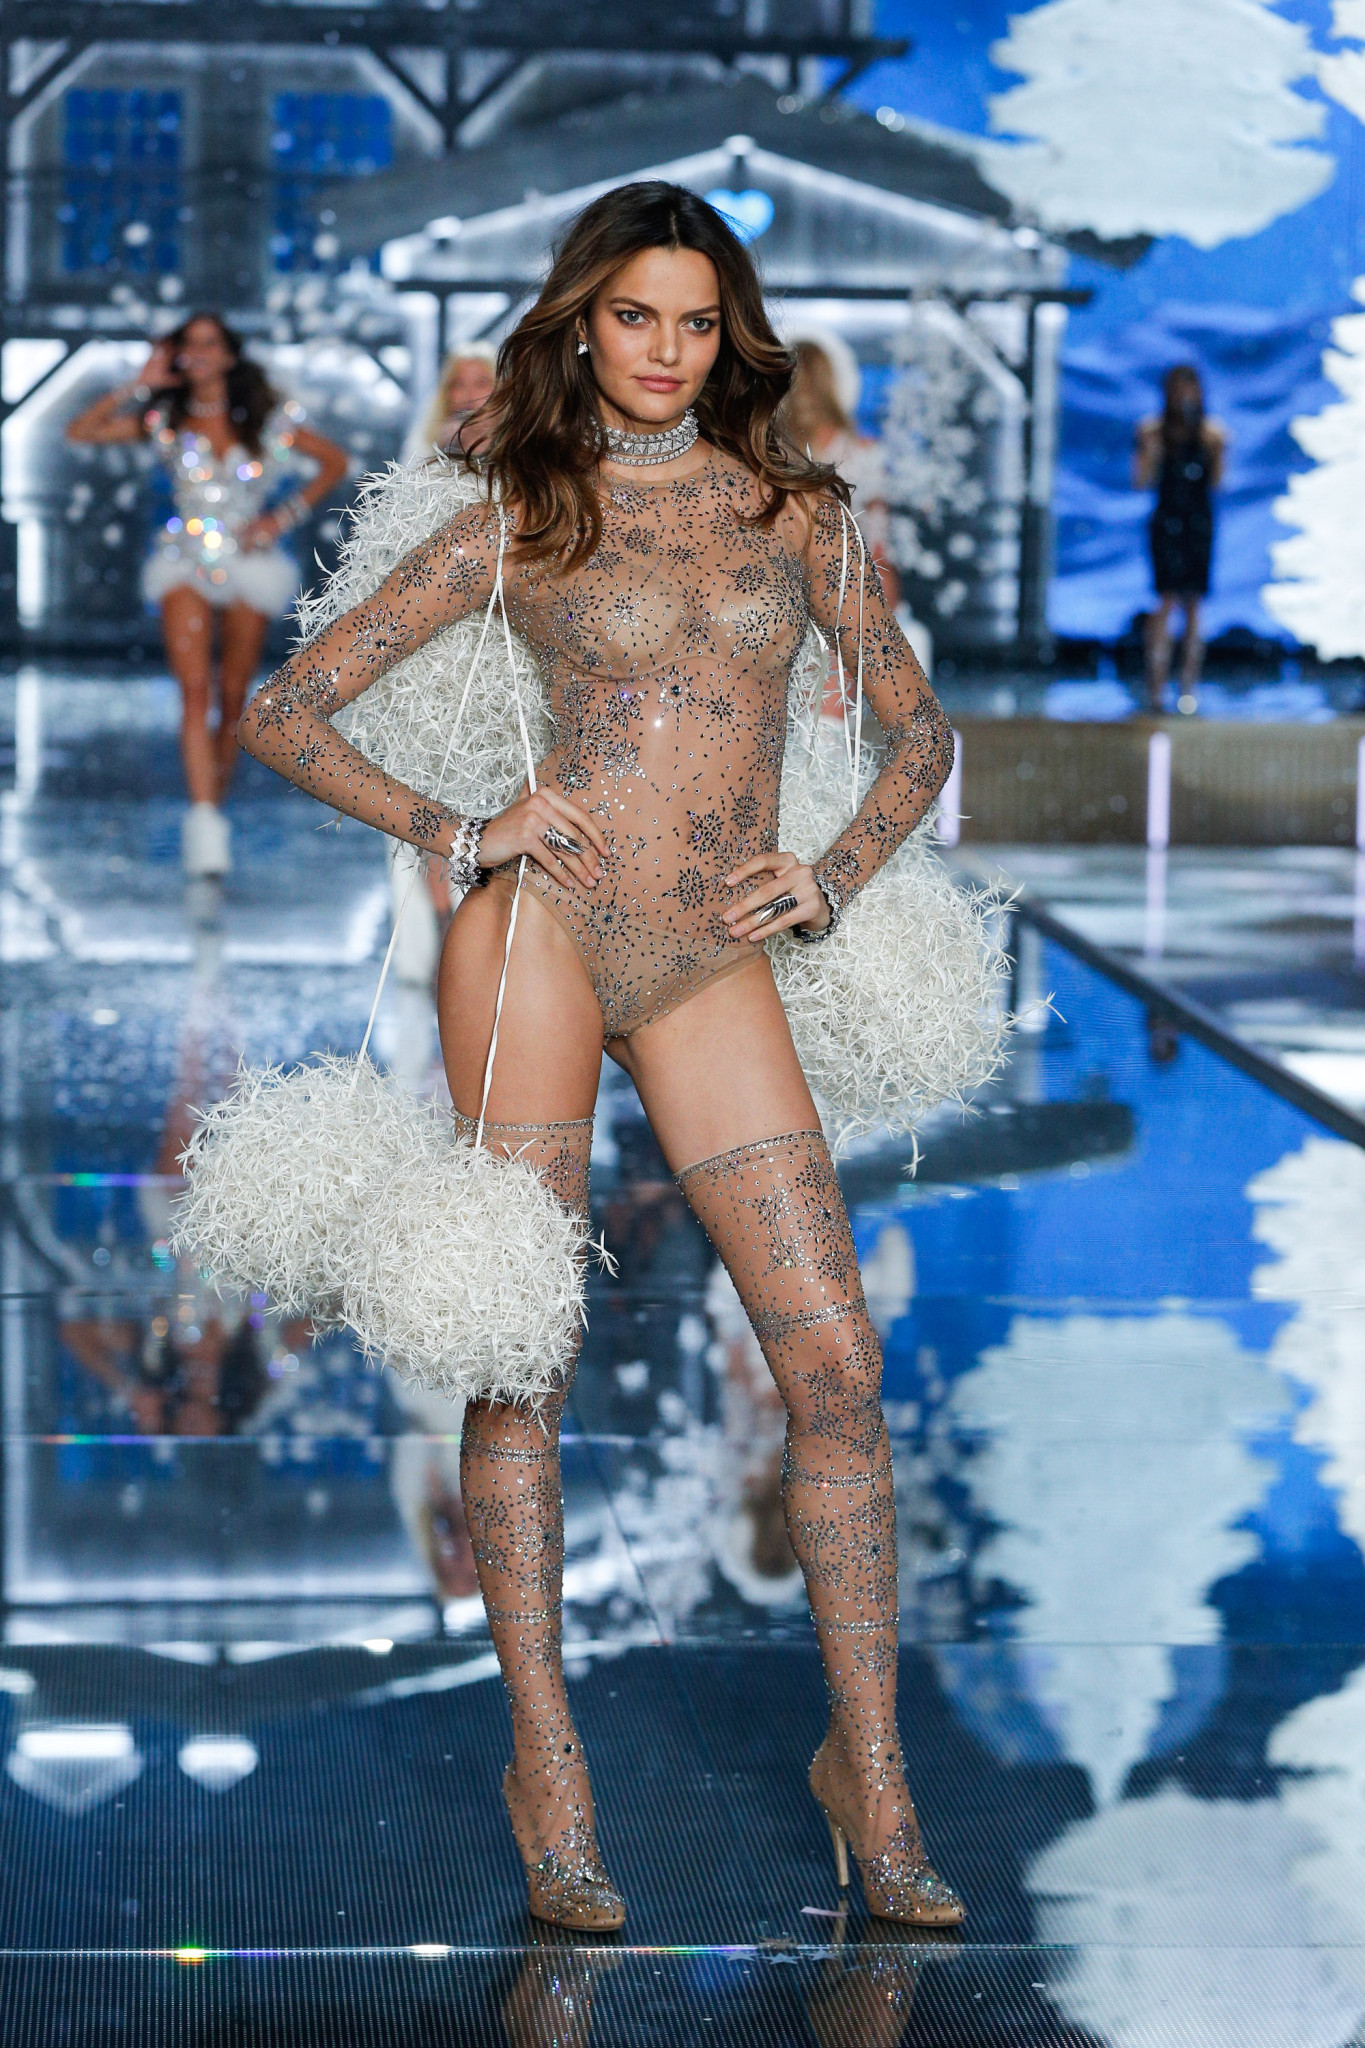 Barbara Fialho walks the runway at the 2015 Victoria's Secret Fashion Show in New York City on November 10th, 2015